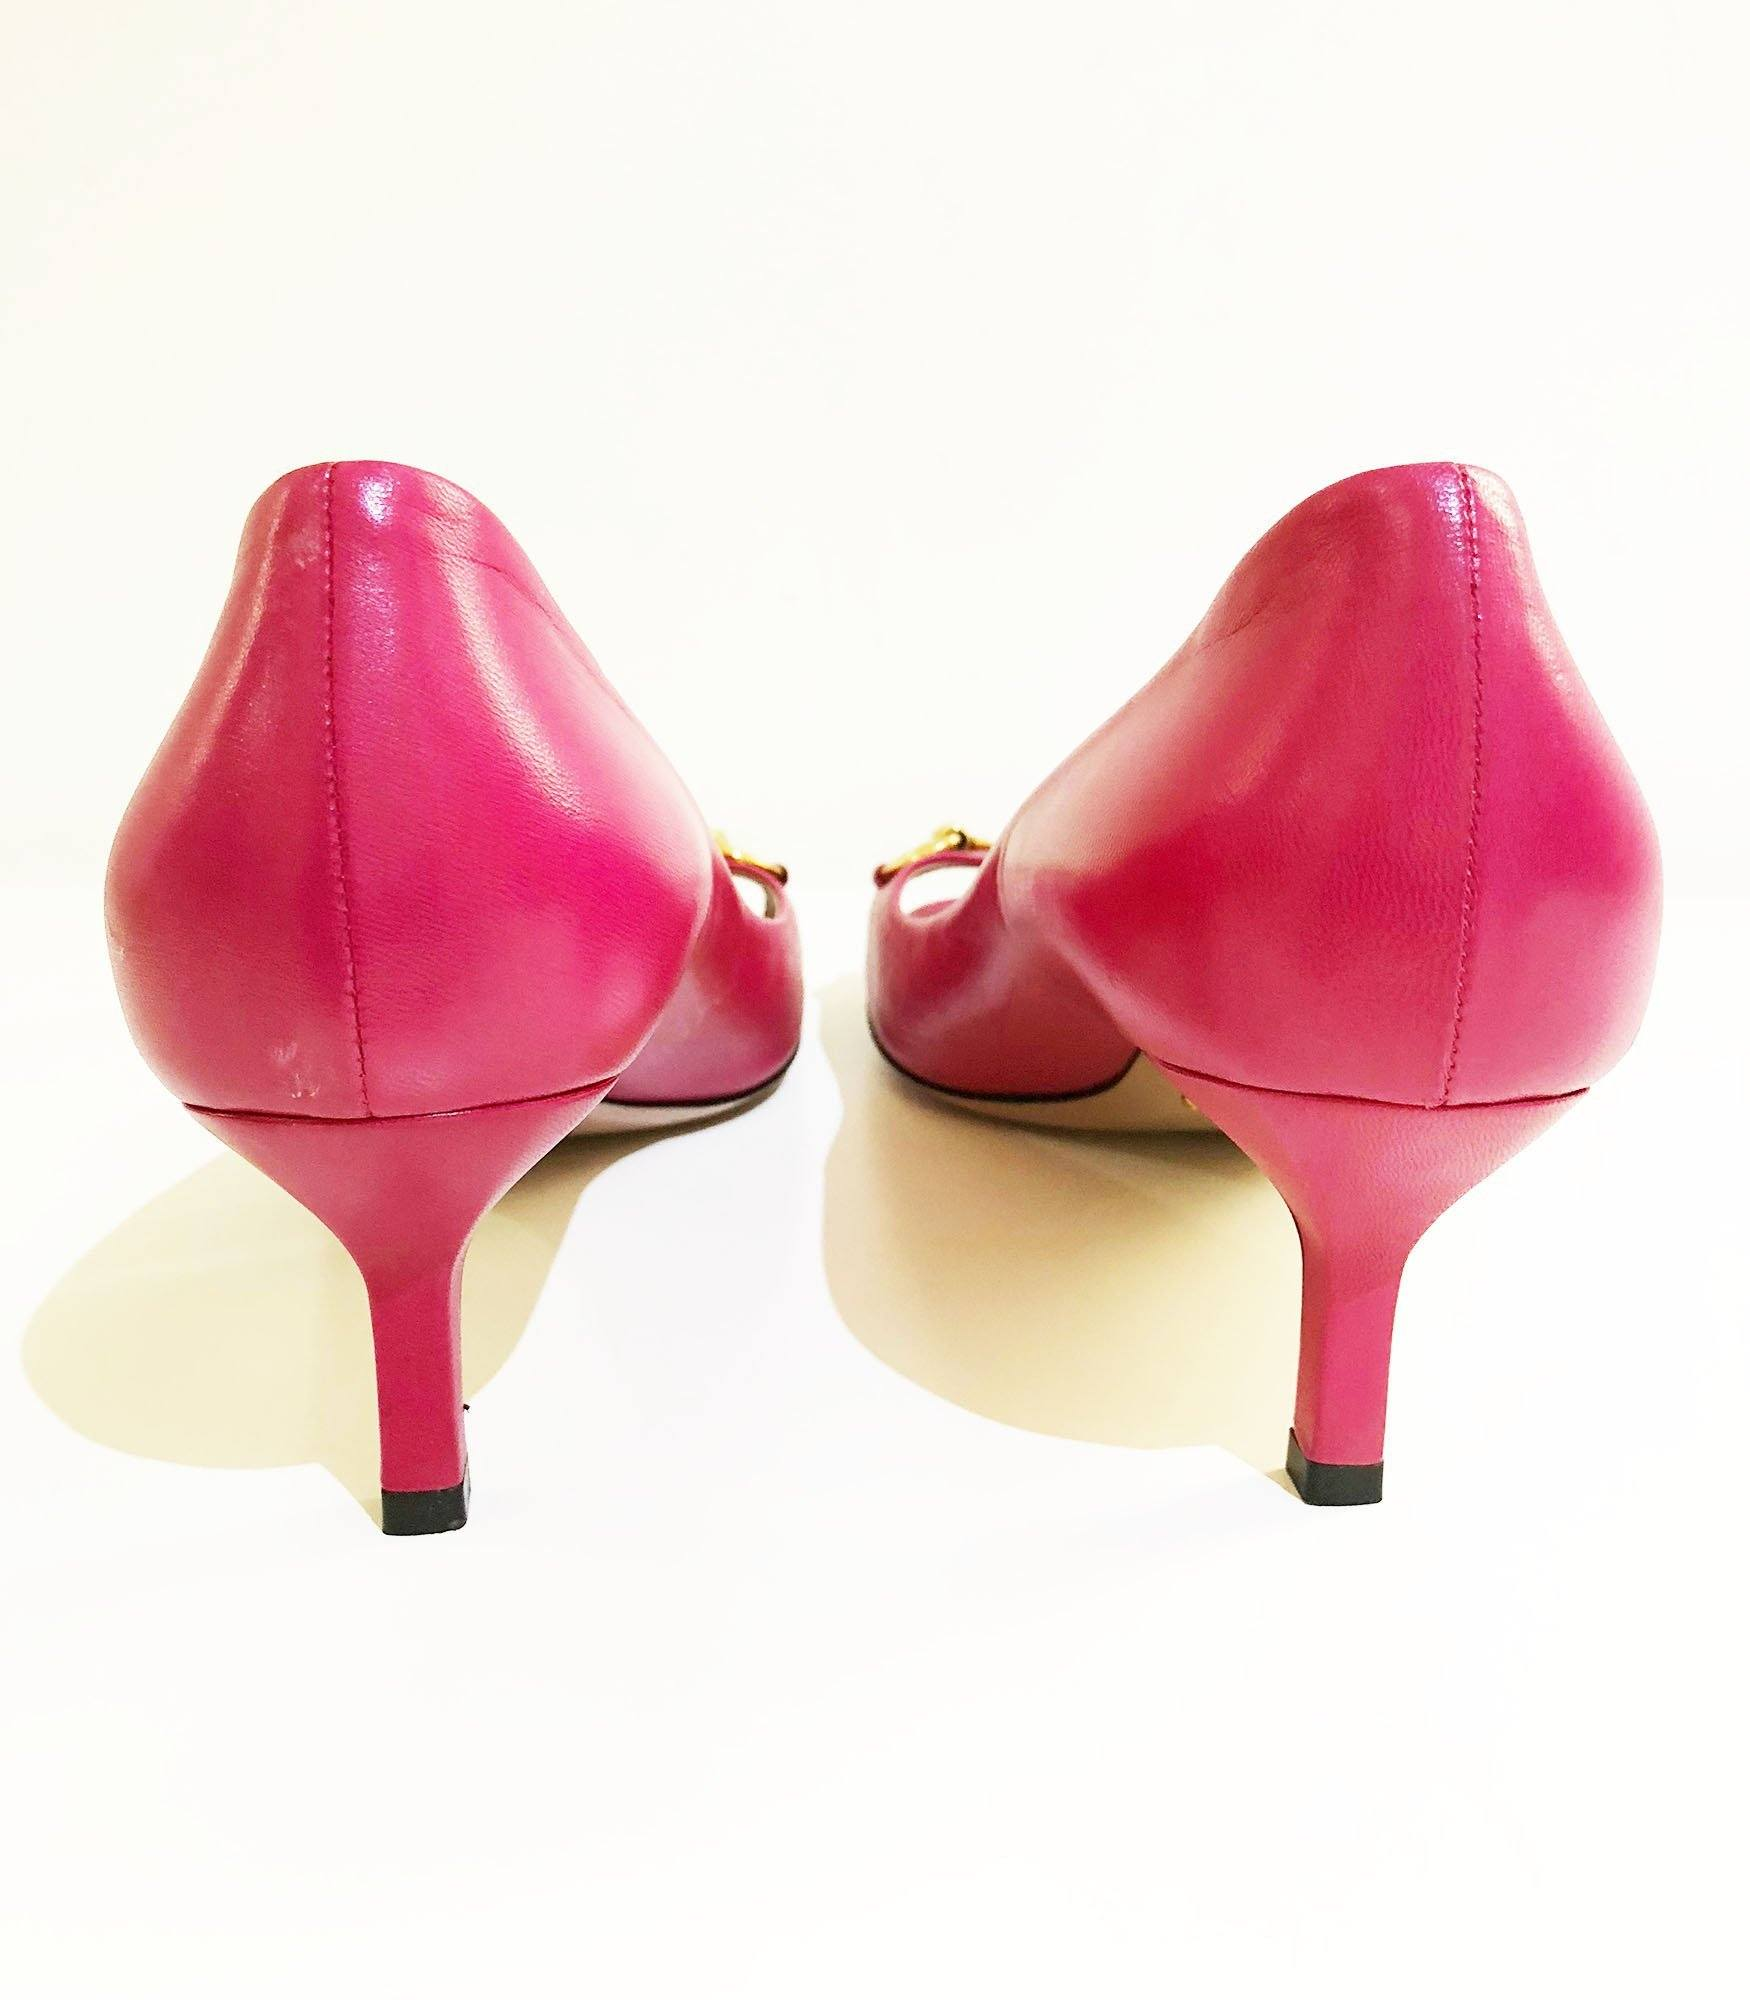 Gucci Pink Horsebit Peep Toe Pumps